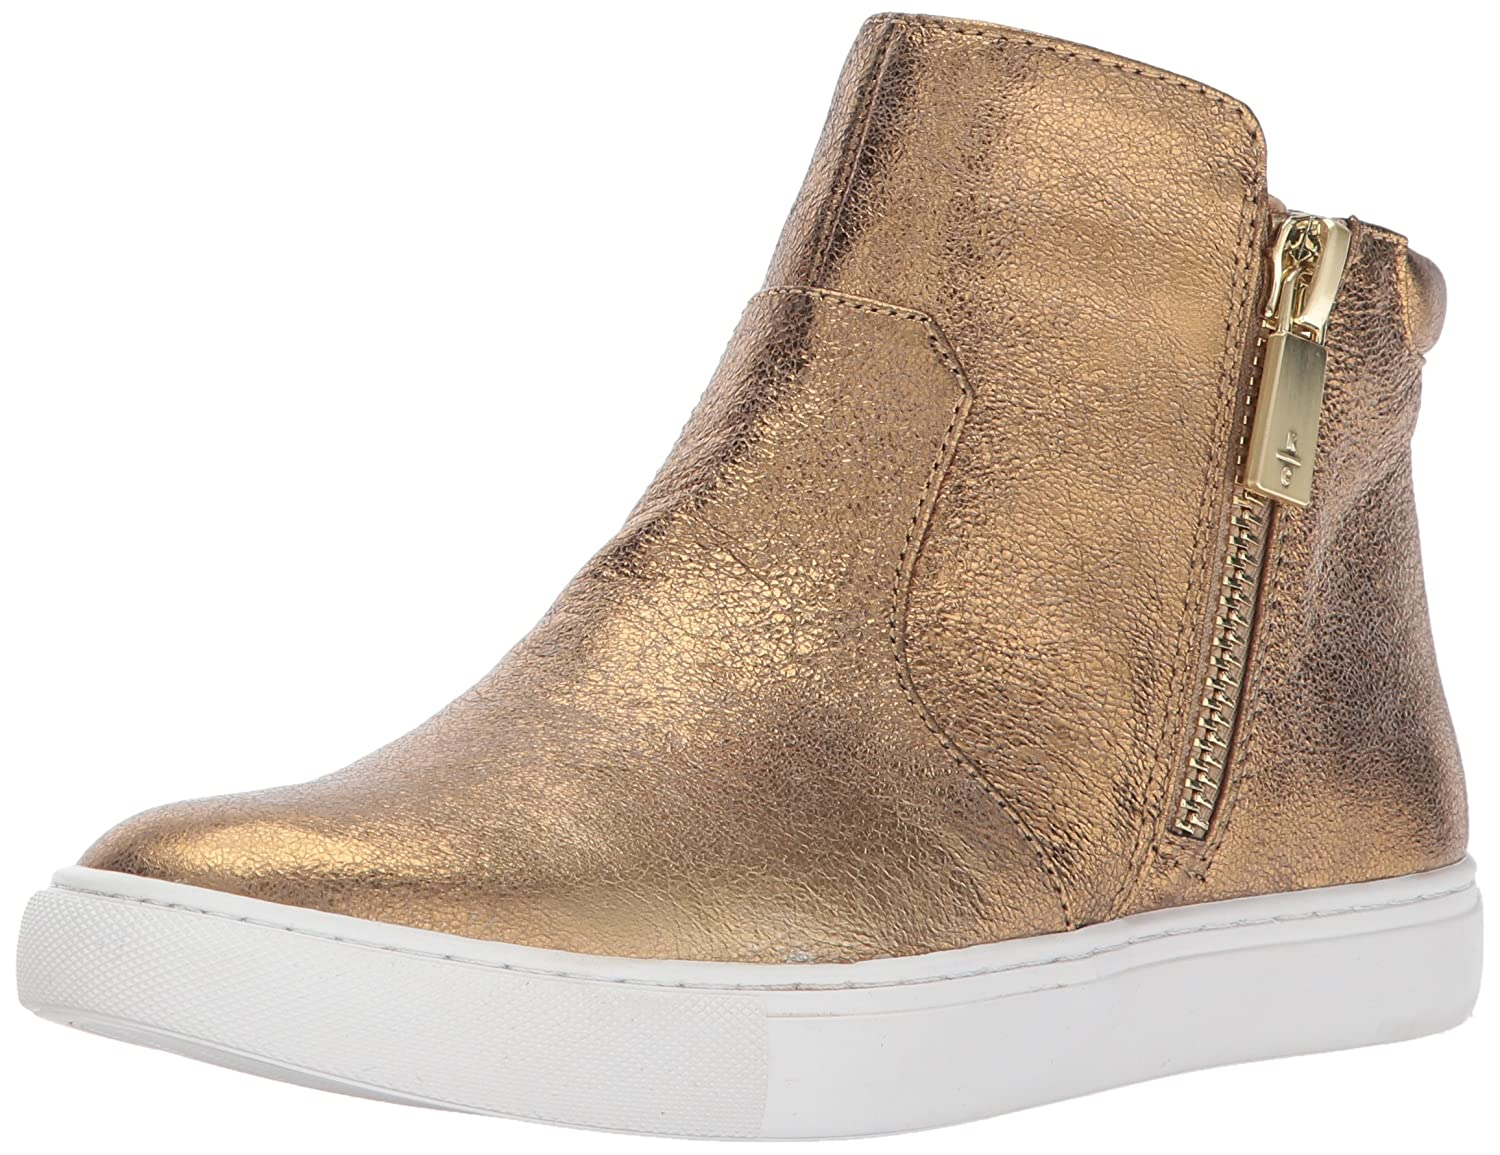 Kenneth Cole New York Women's Kiera High Top Leather Fashion Sneaker B01MR98RIP 9 B(M) US|Gold